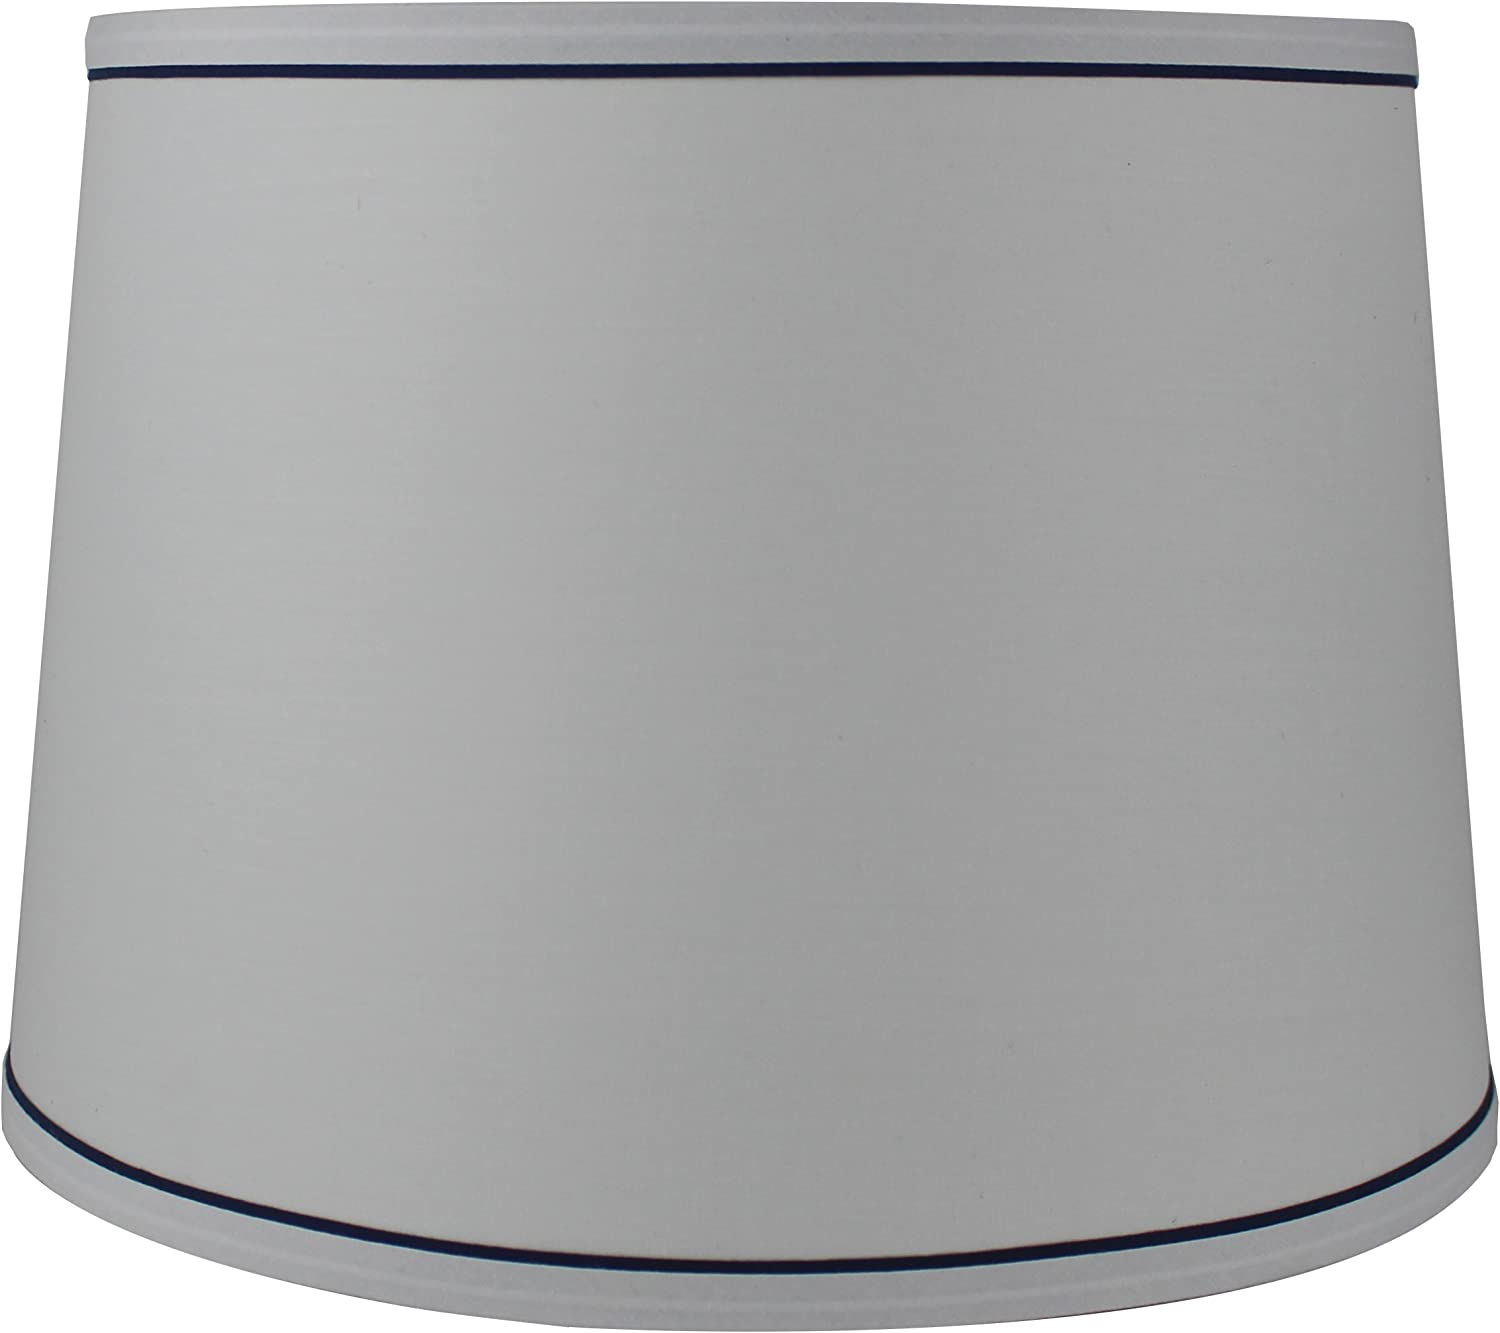 Urbanest White with Trim Max 77% OFF French by Lampshade Credence 12-inch Drum 14-in